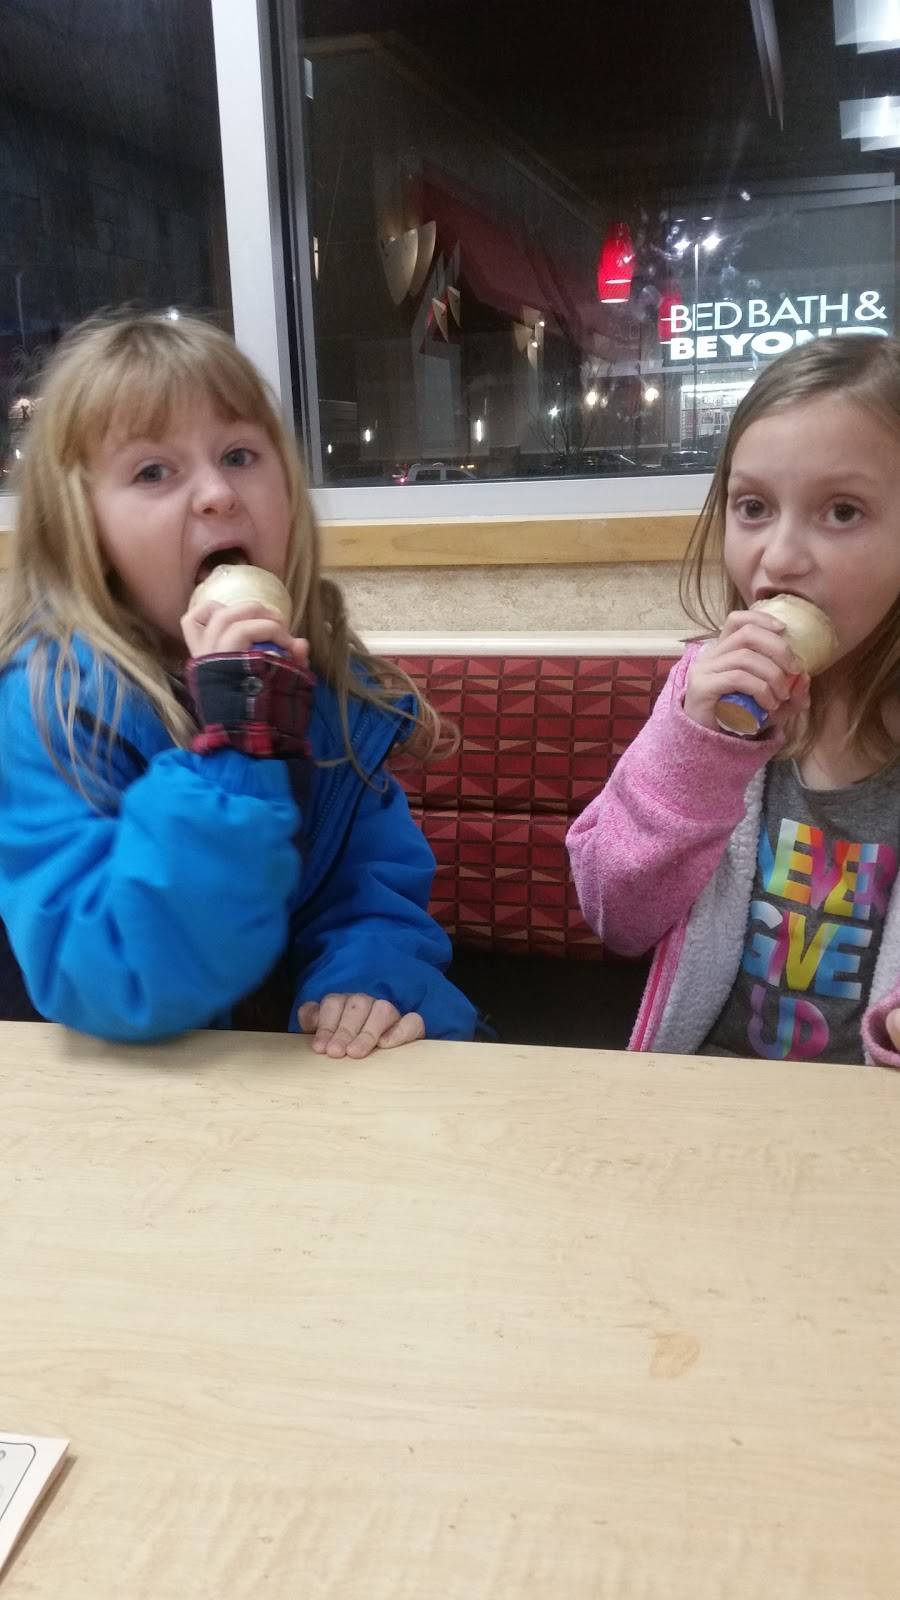 Dairy Queen Grill & Chill - restaurant    Photo 10 of 10   Address: 1055 Veterans Pkwy, Clarksville, IN 47129, USA   Phone: (812) 218-9127